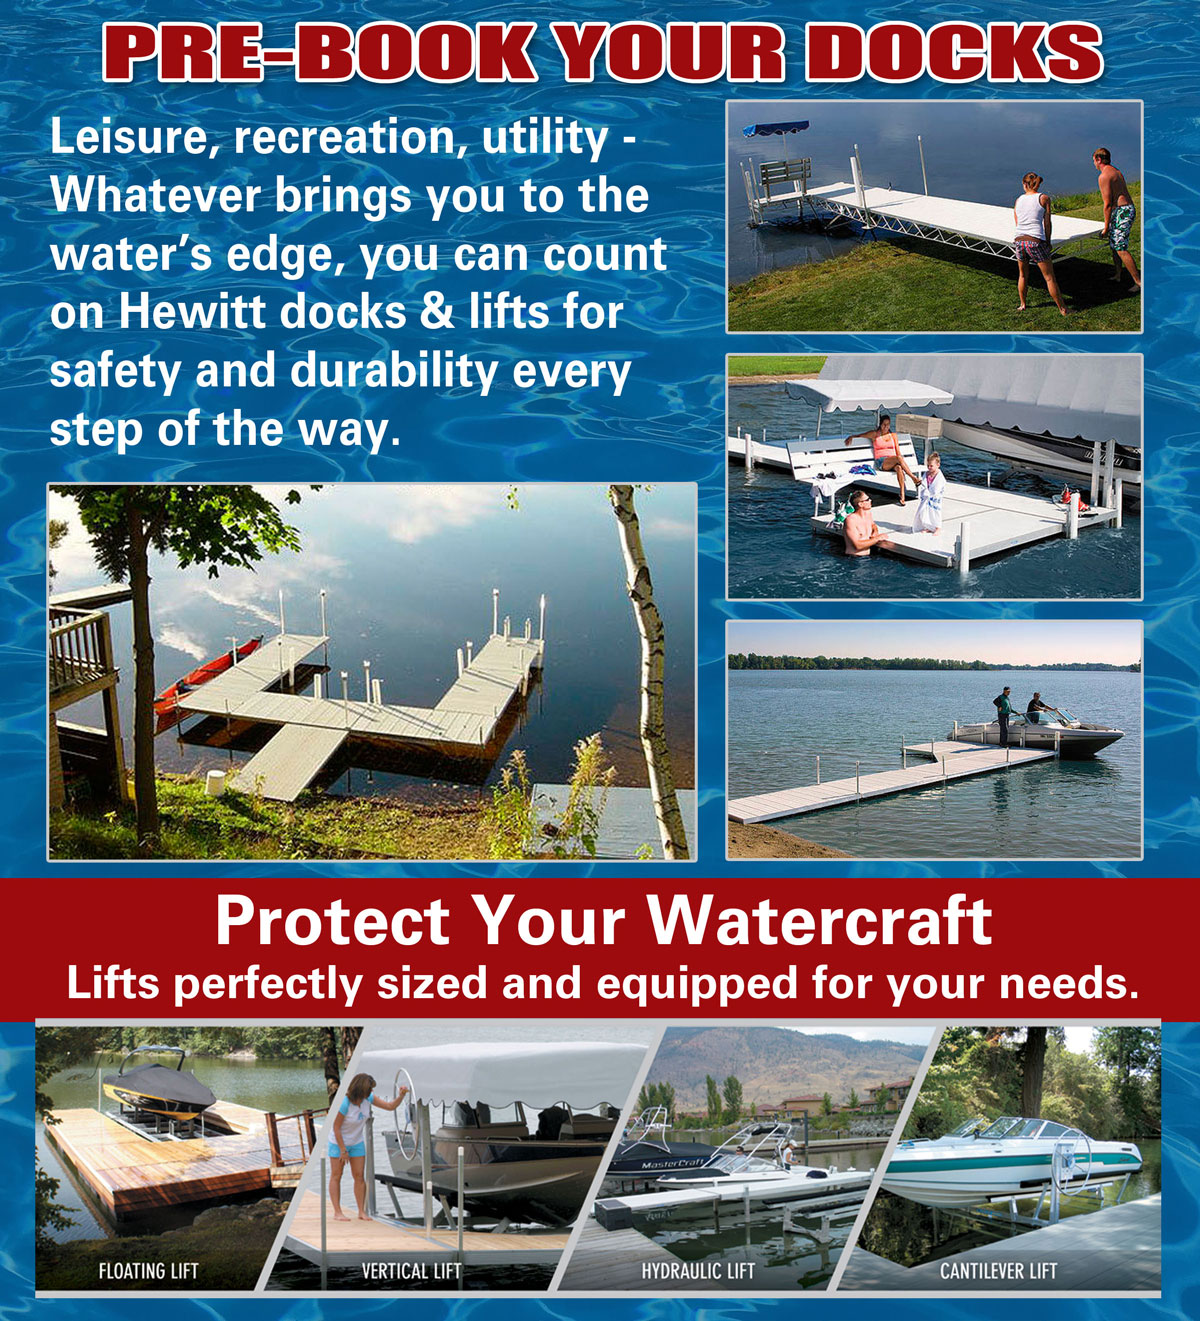 Hewitt Docks to Protect Your Watercraft